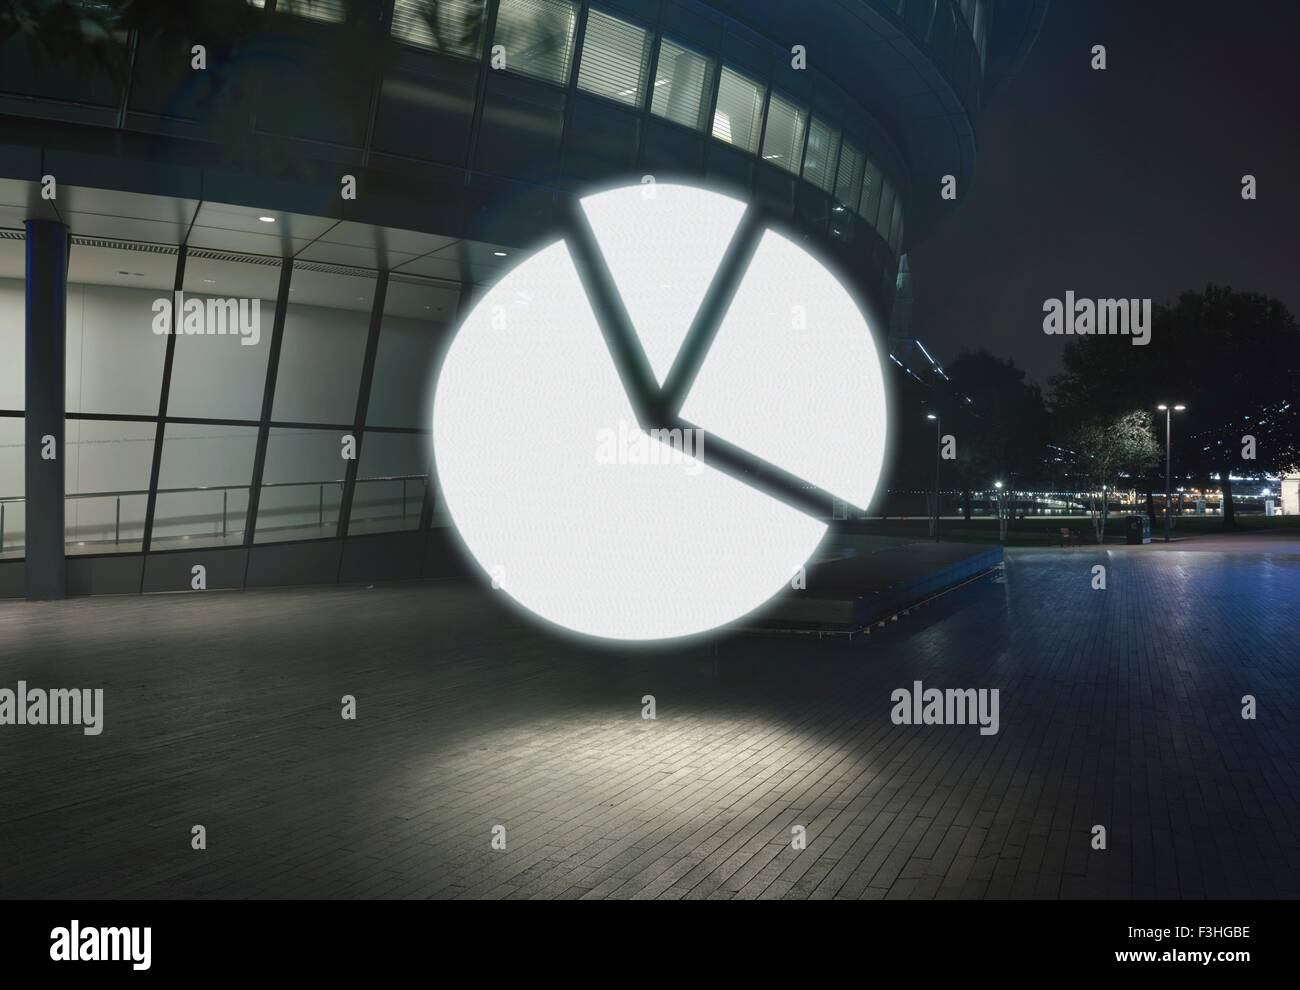 Glowing pie chart symbol in city at night - Stock Image